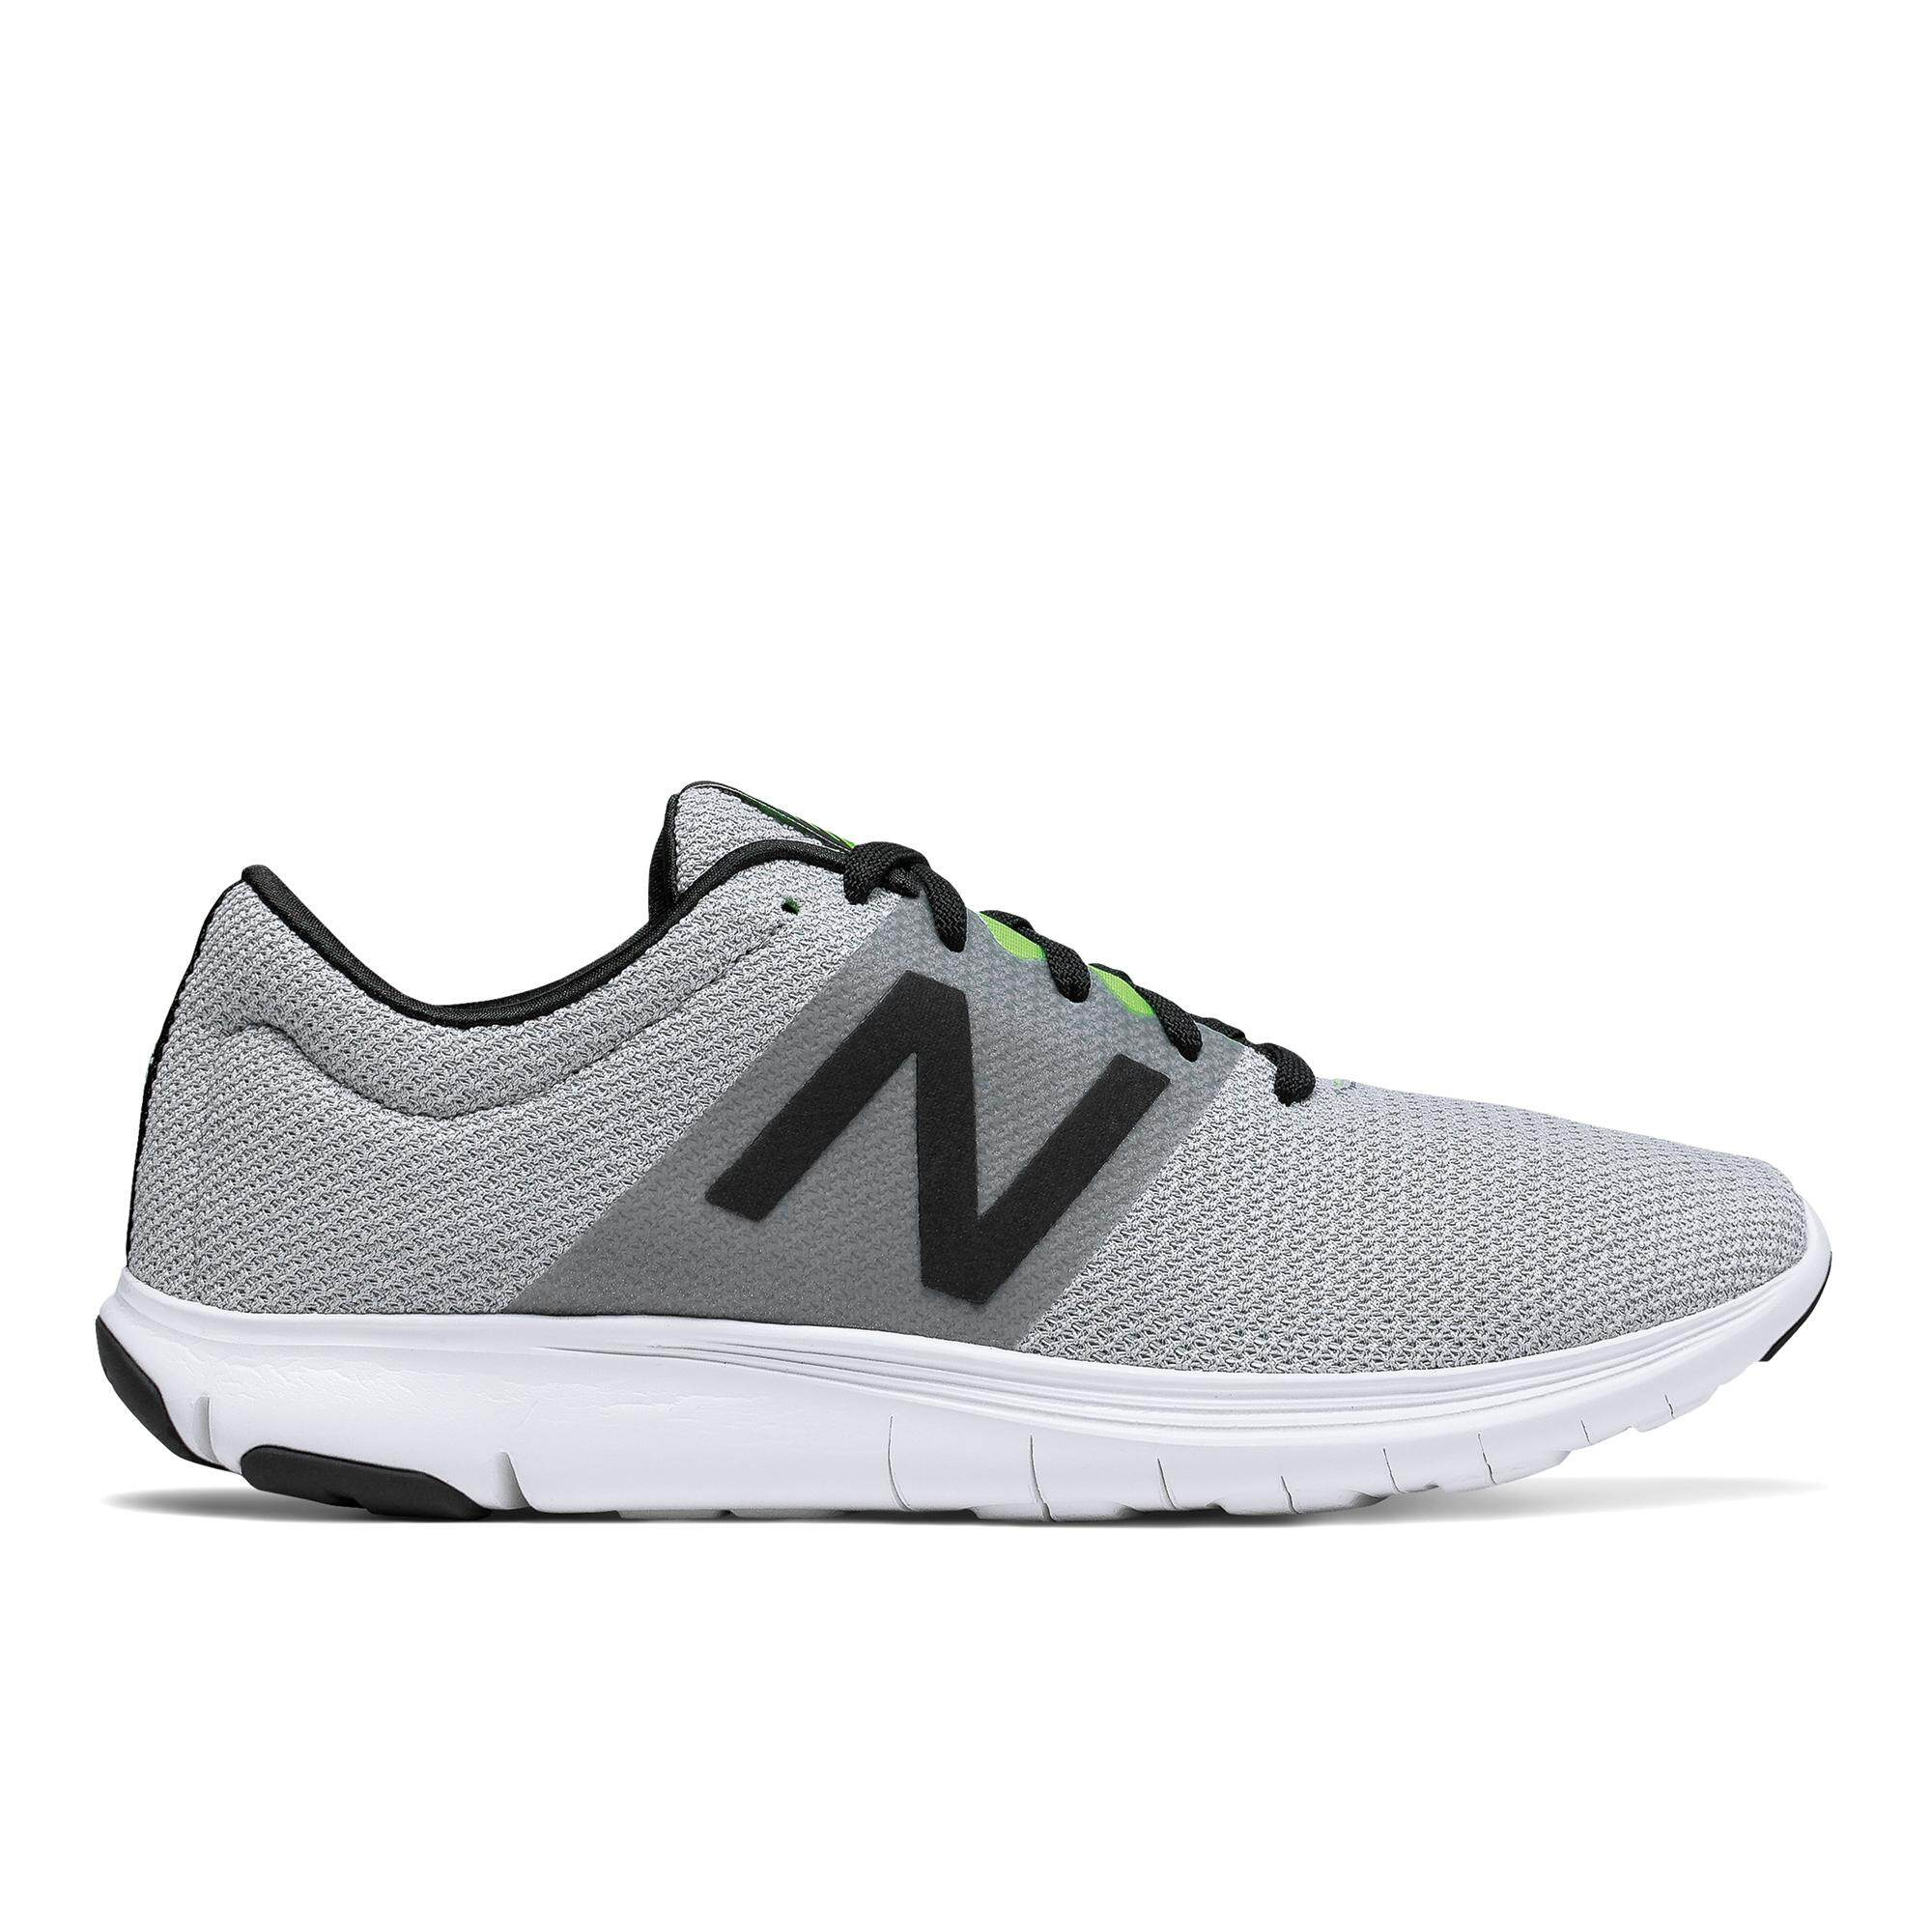 1fd47f0905 New Balance Official Store - Buy New Balance Official Store at Best ...